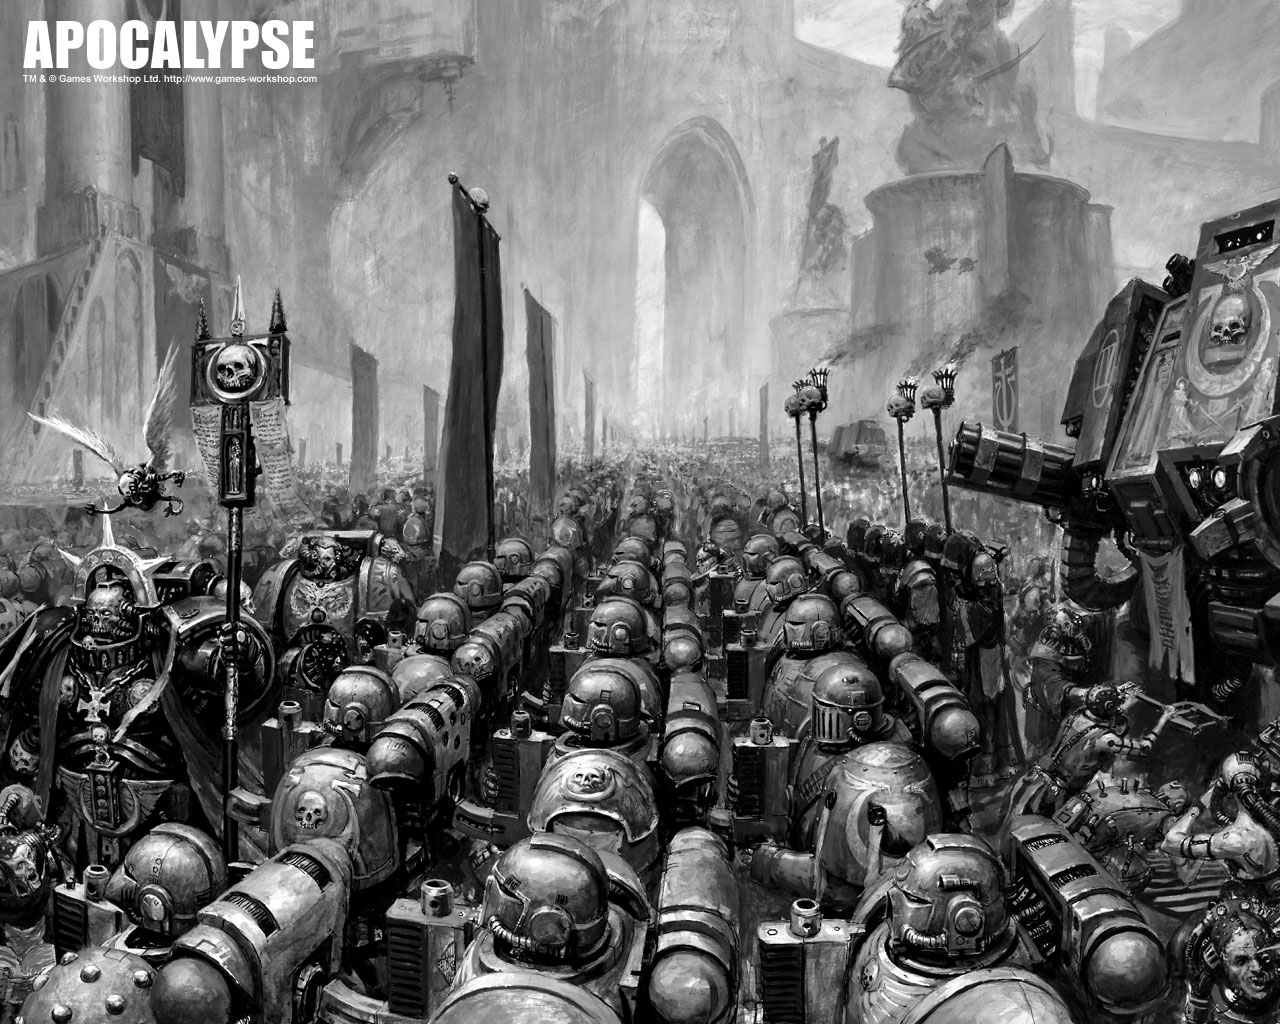 video games Army grayscale